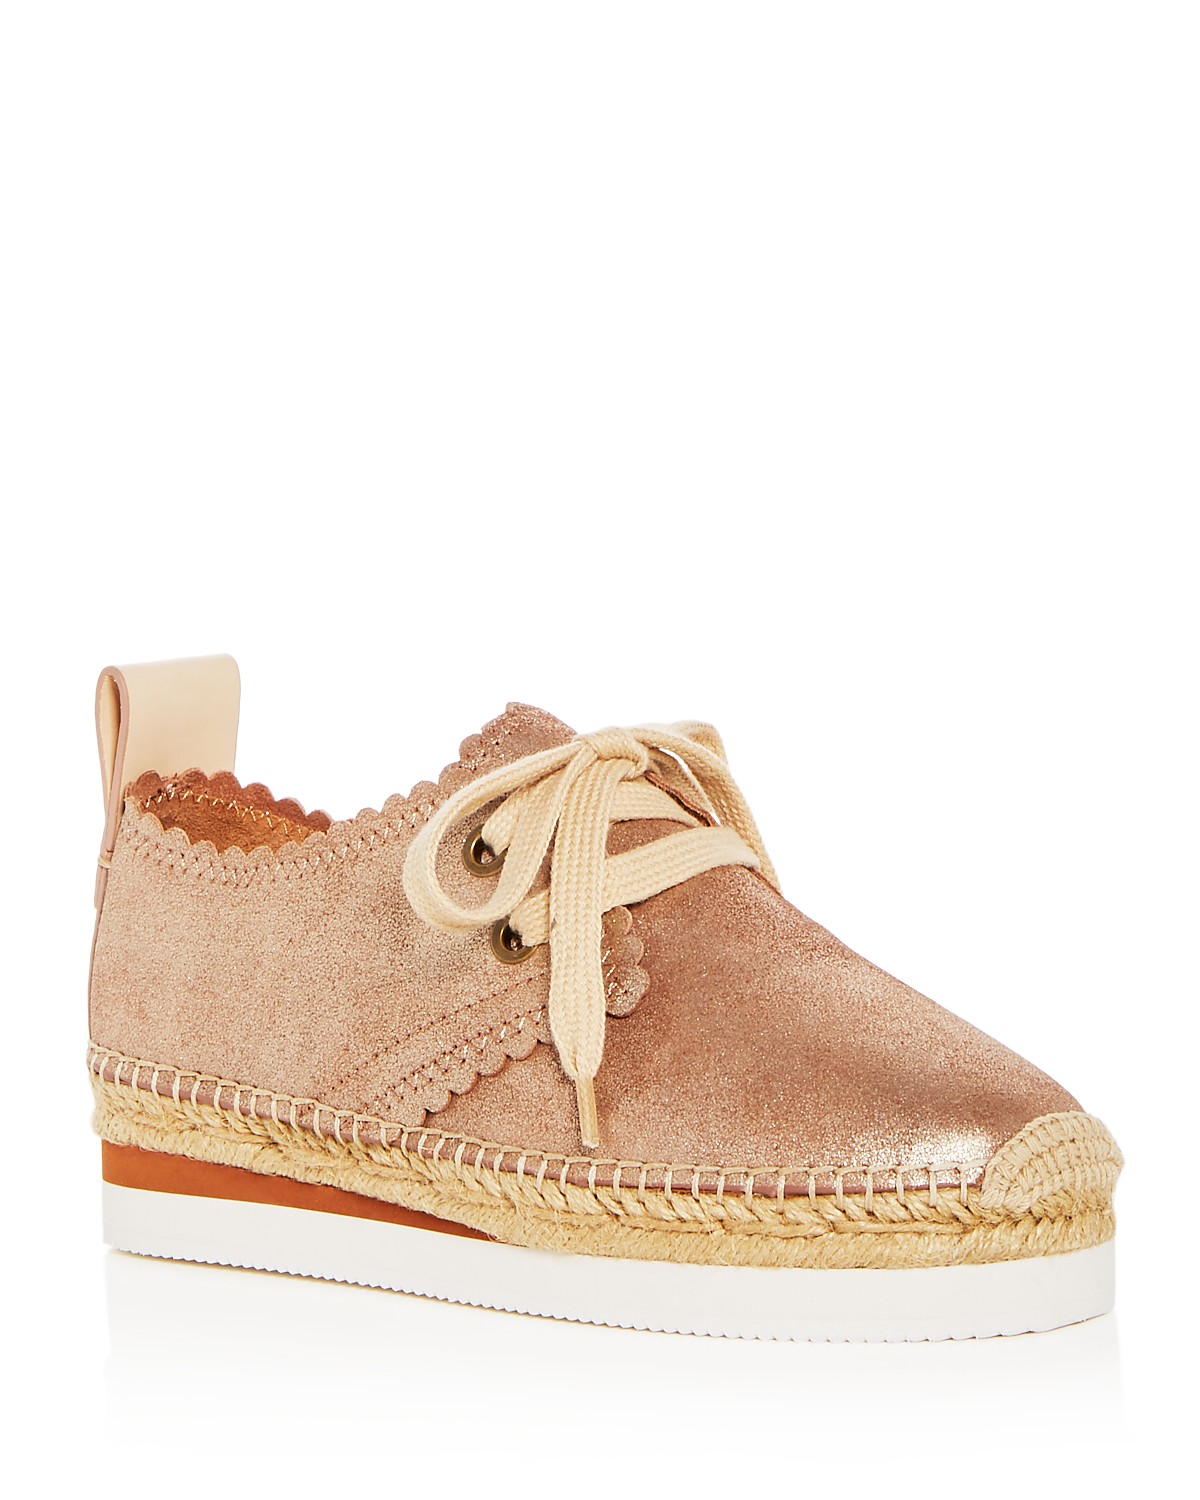 Buy Cheap View Chloé Leather lace-up espadrilles Free Shipping 100% Original Footlocker Finishline Online Official Site Sale Online Discount Price Vv6RN